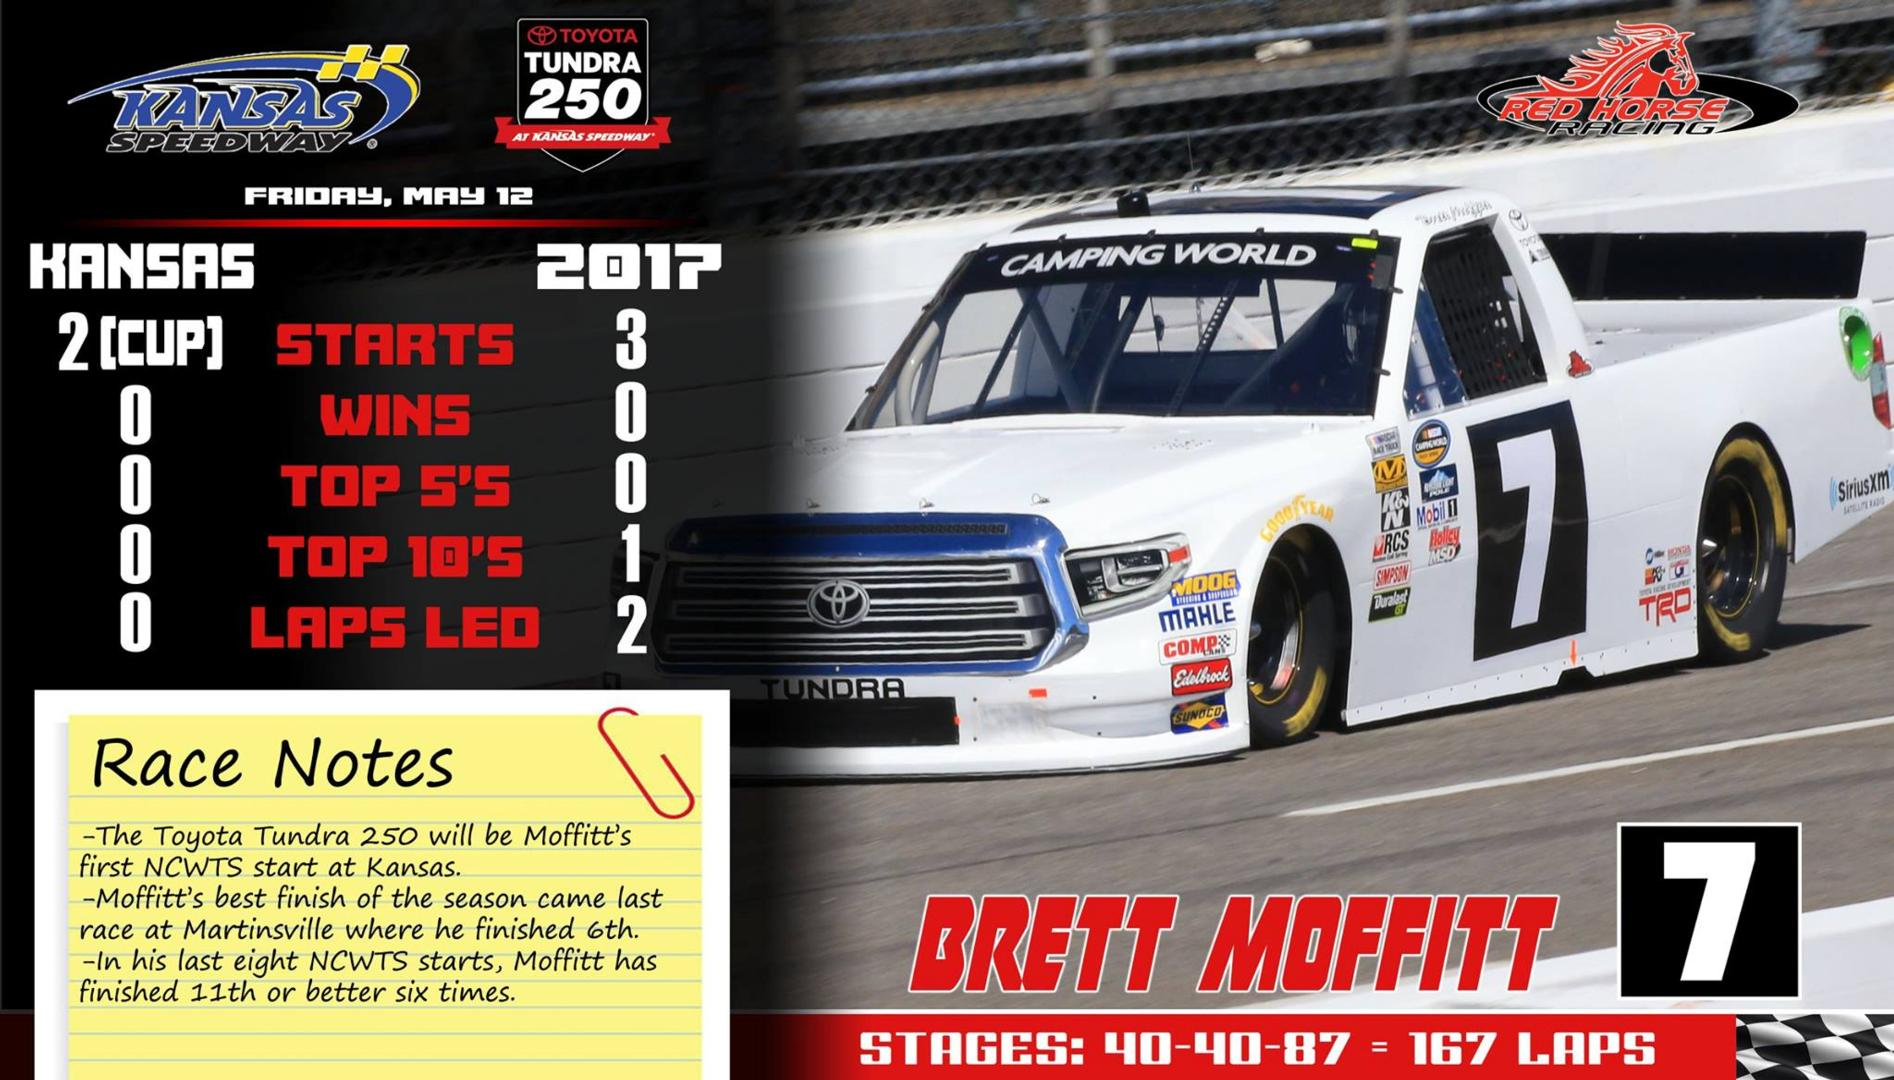 Moffitt makes his first NCWTS start in KC Friday night